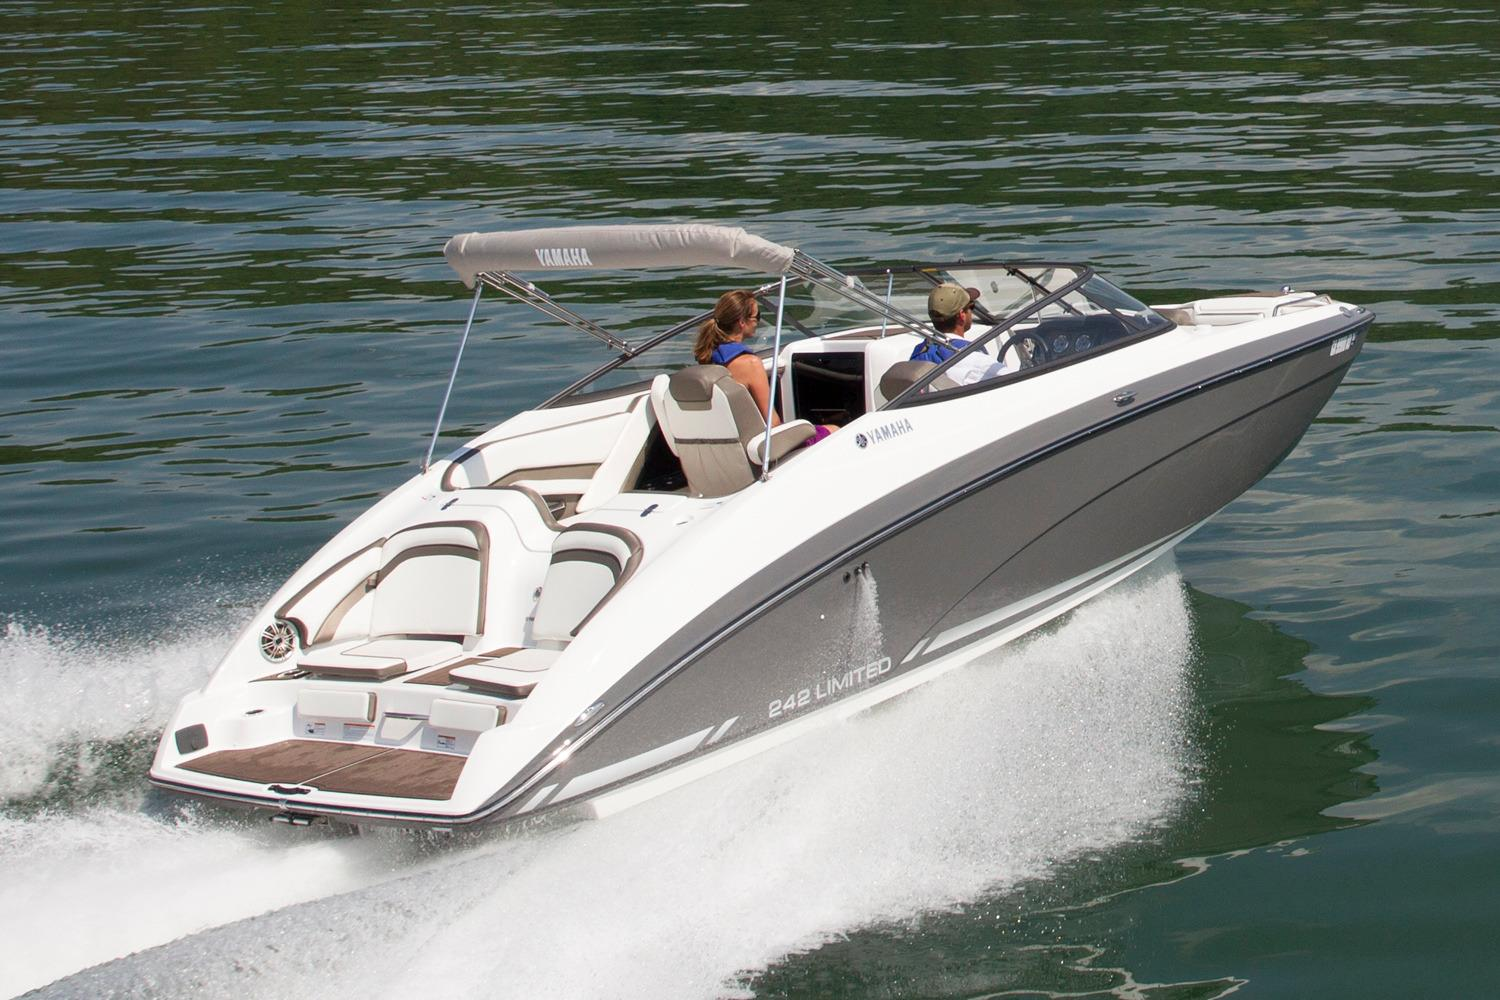 2016 Yamaha 242 Limited in South Windsor, Connecticut